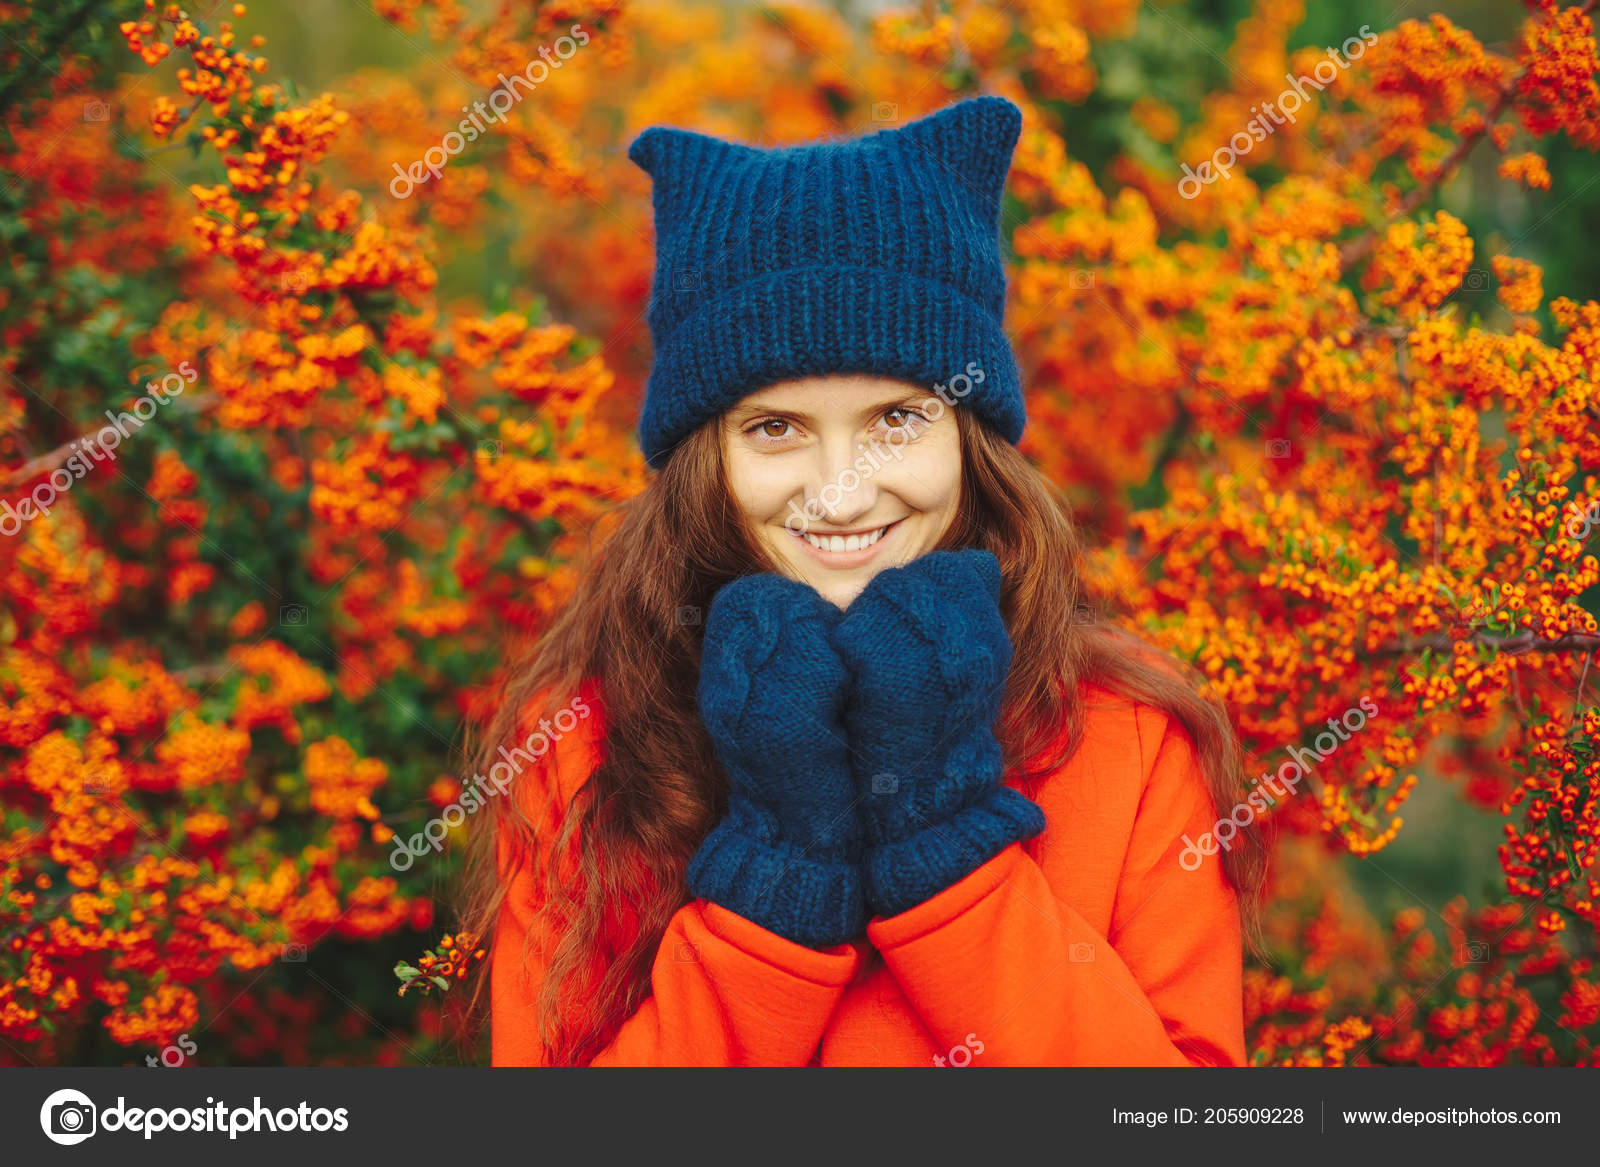 f8a311911e6 Outdoor close up portrait of young beautiful happy smiling hipster girl  posing on street